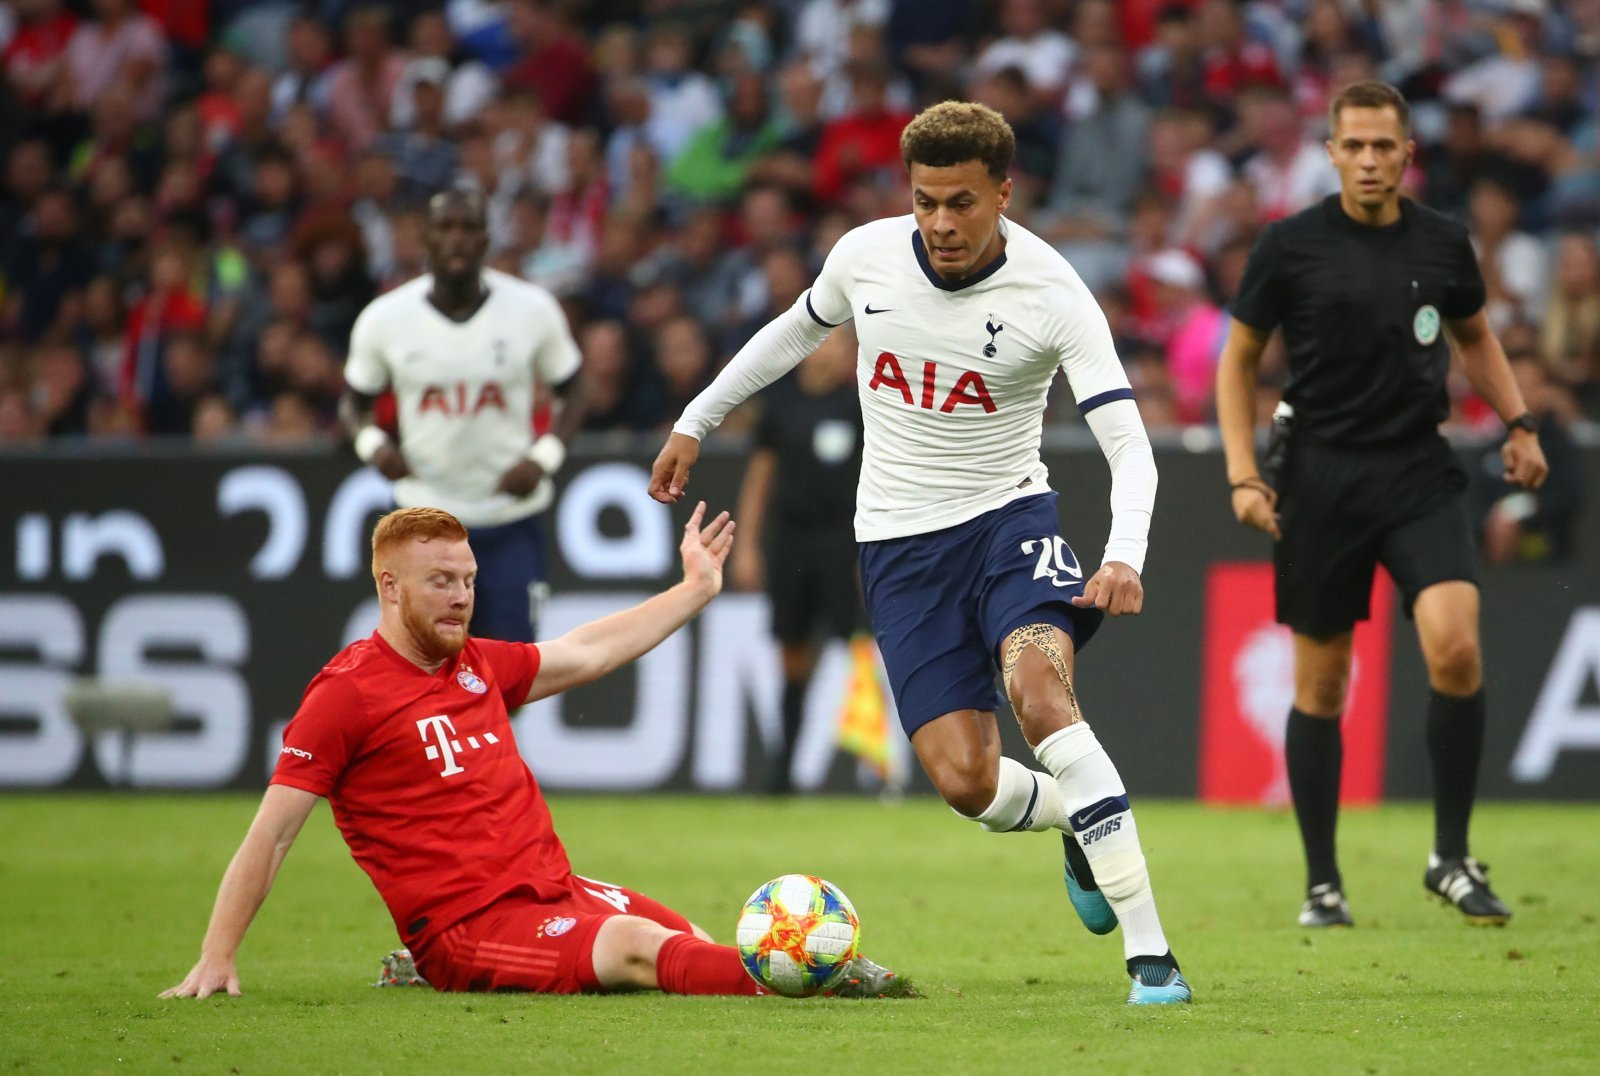 Tottenham Hotspur: Dele Alli could be available for Newcastle United meeting